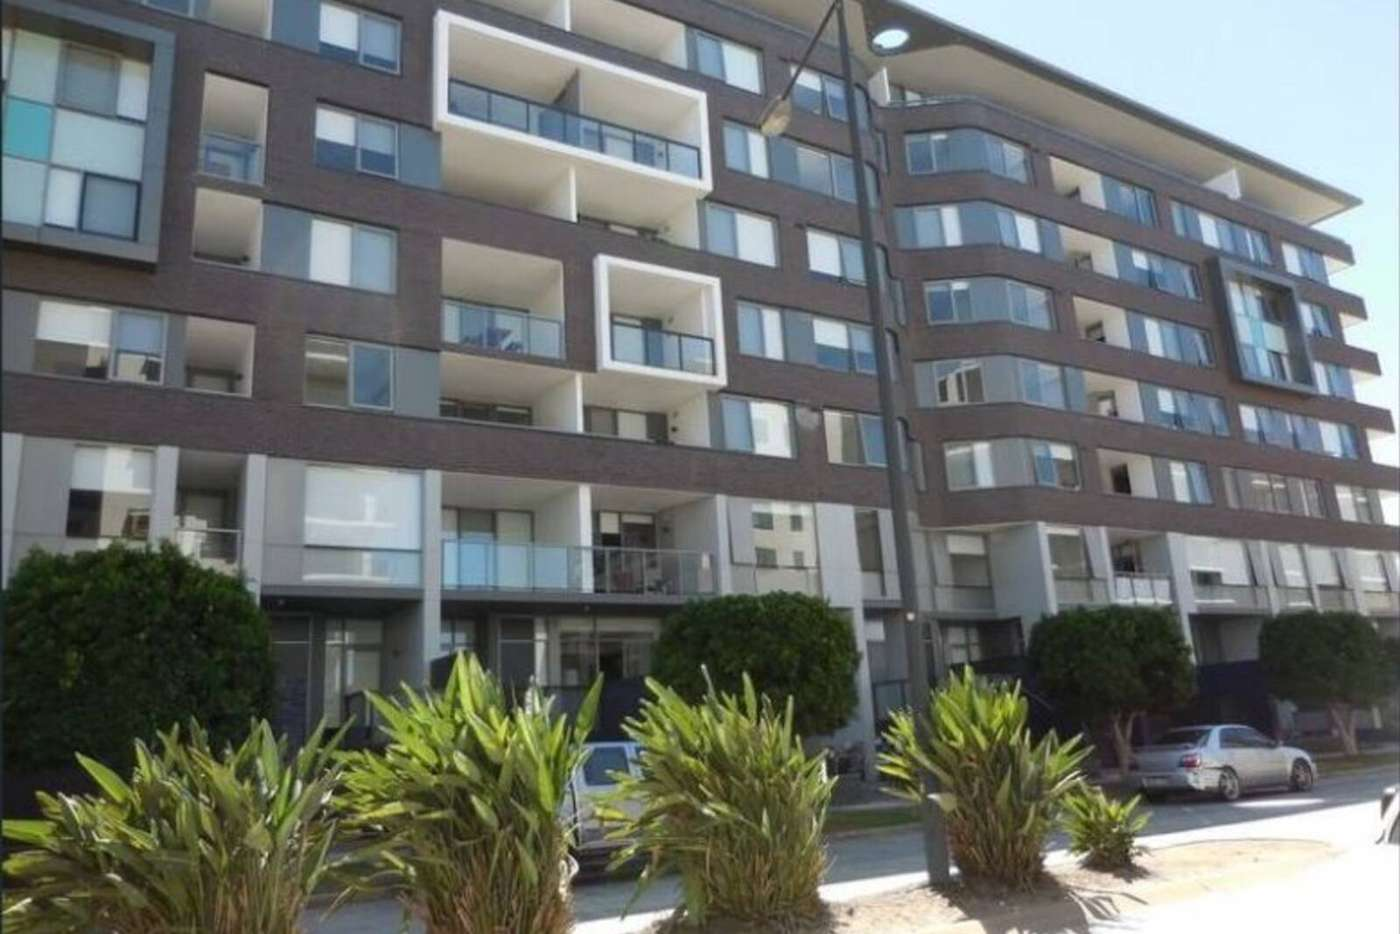 Main view of Homely apartment listing, 210/15 Baywater Drive, Wentworth Point NSW 2127